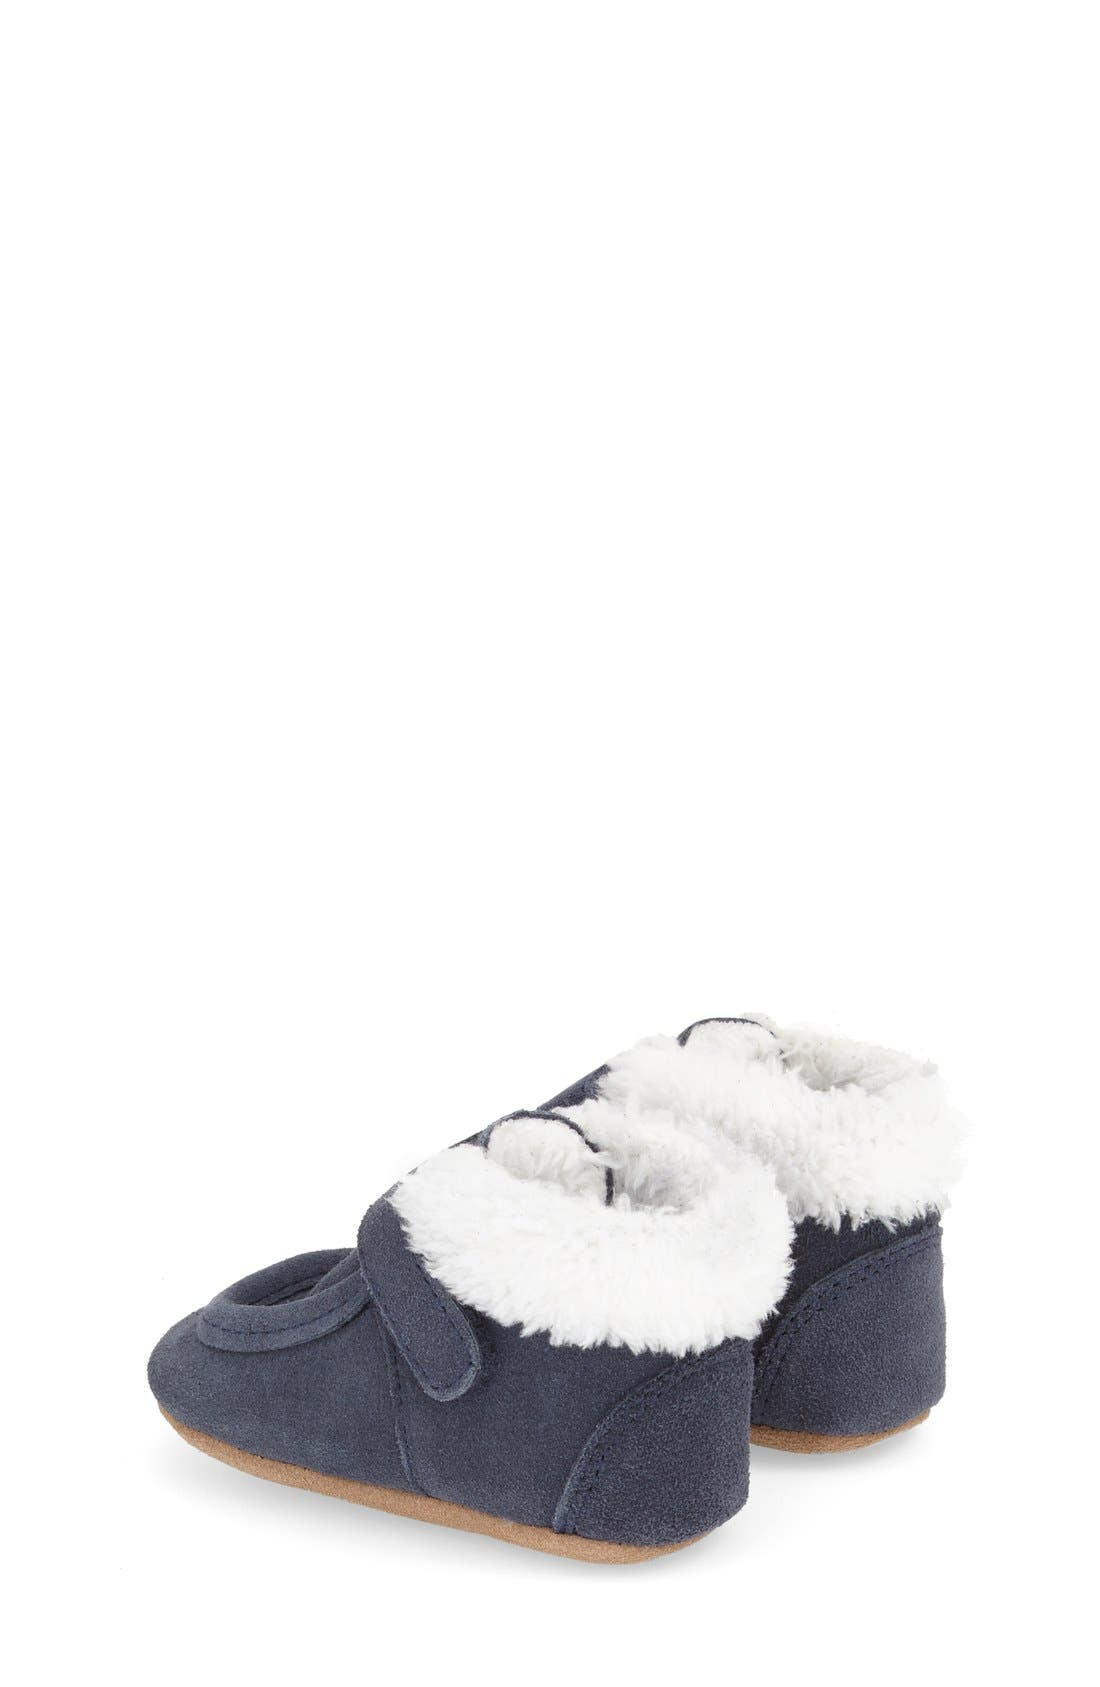 'Sawyer Snuggle' Crib Shoe,                             Alternate thumbnail 2, color,                             Navy Leather